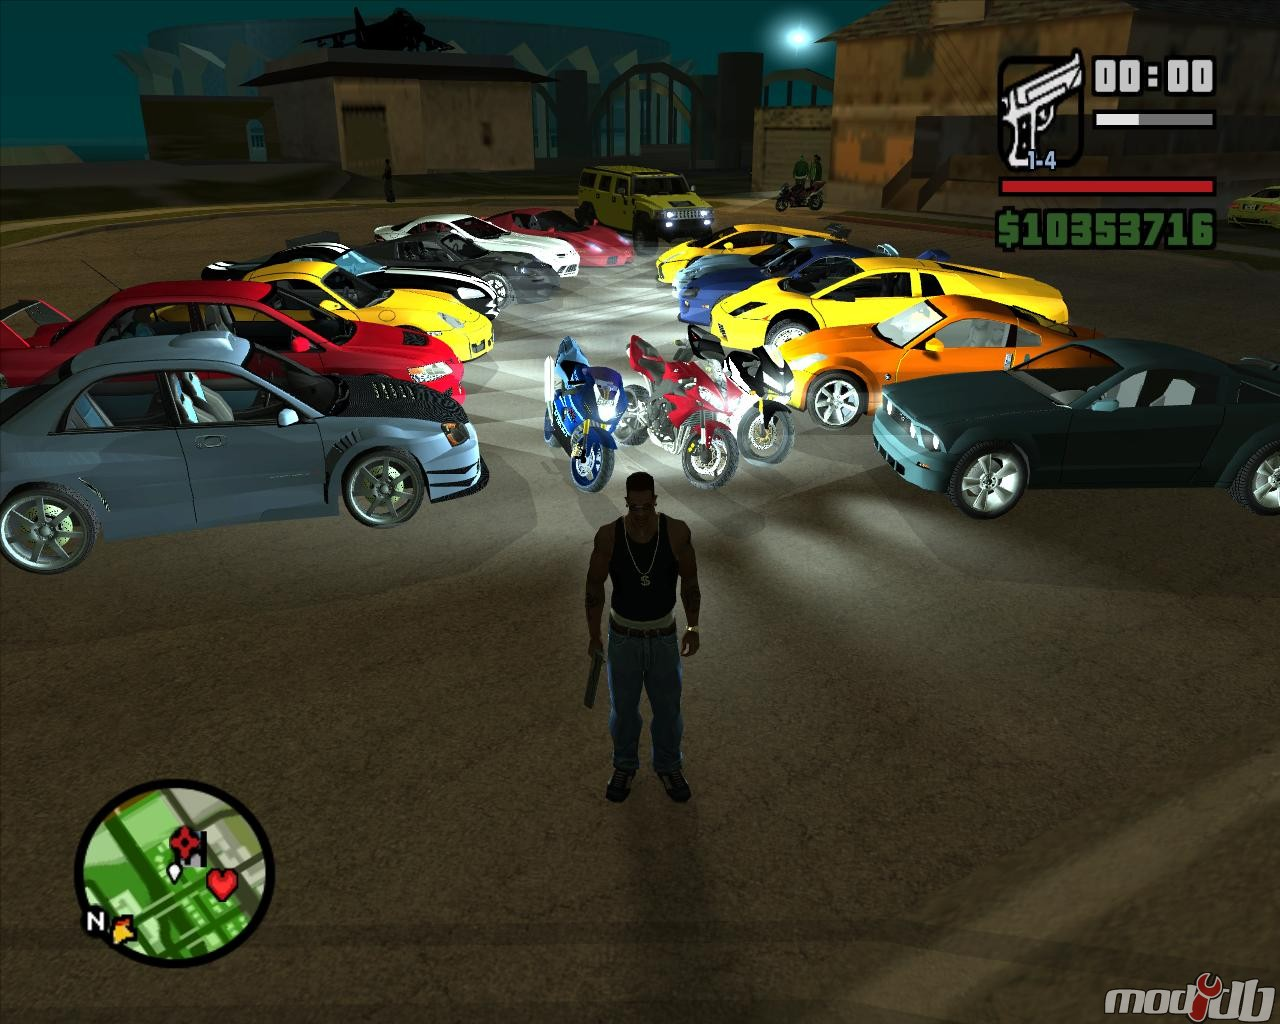 [Image: download+gta+san+andreas+for+pc.jpg]